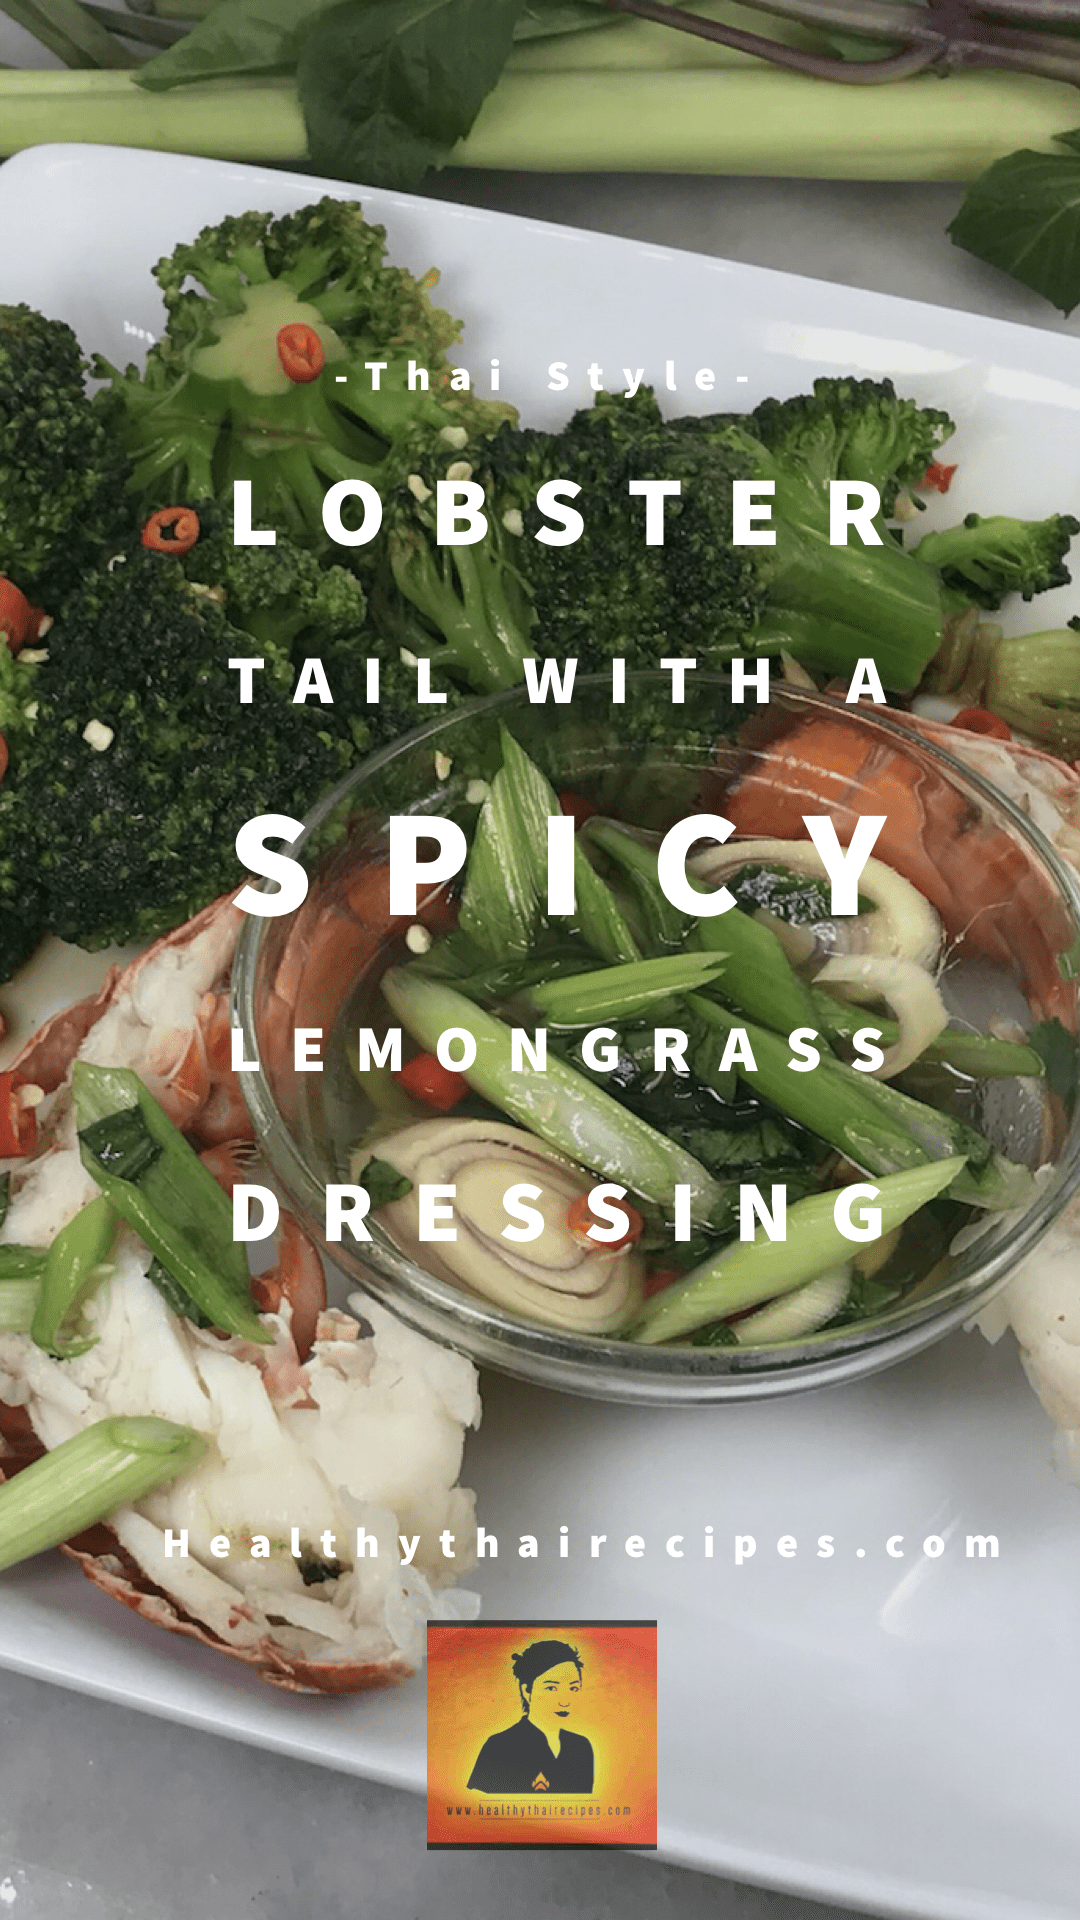 Lobster Tail With Spicy Lemongrass Dressing